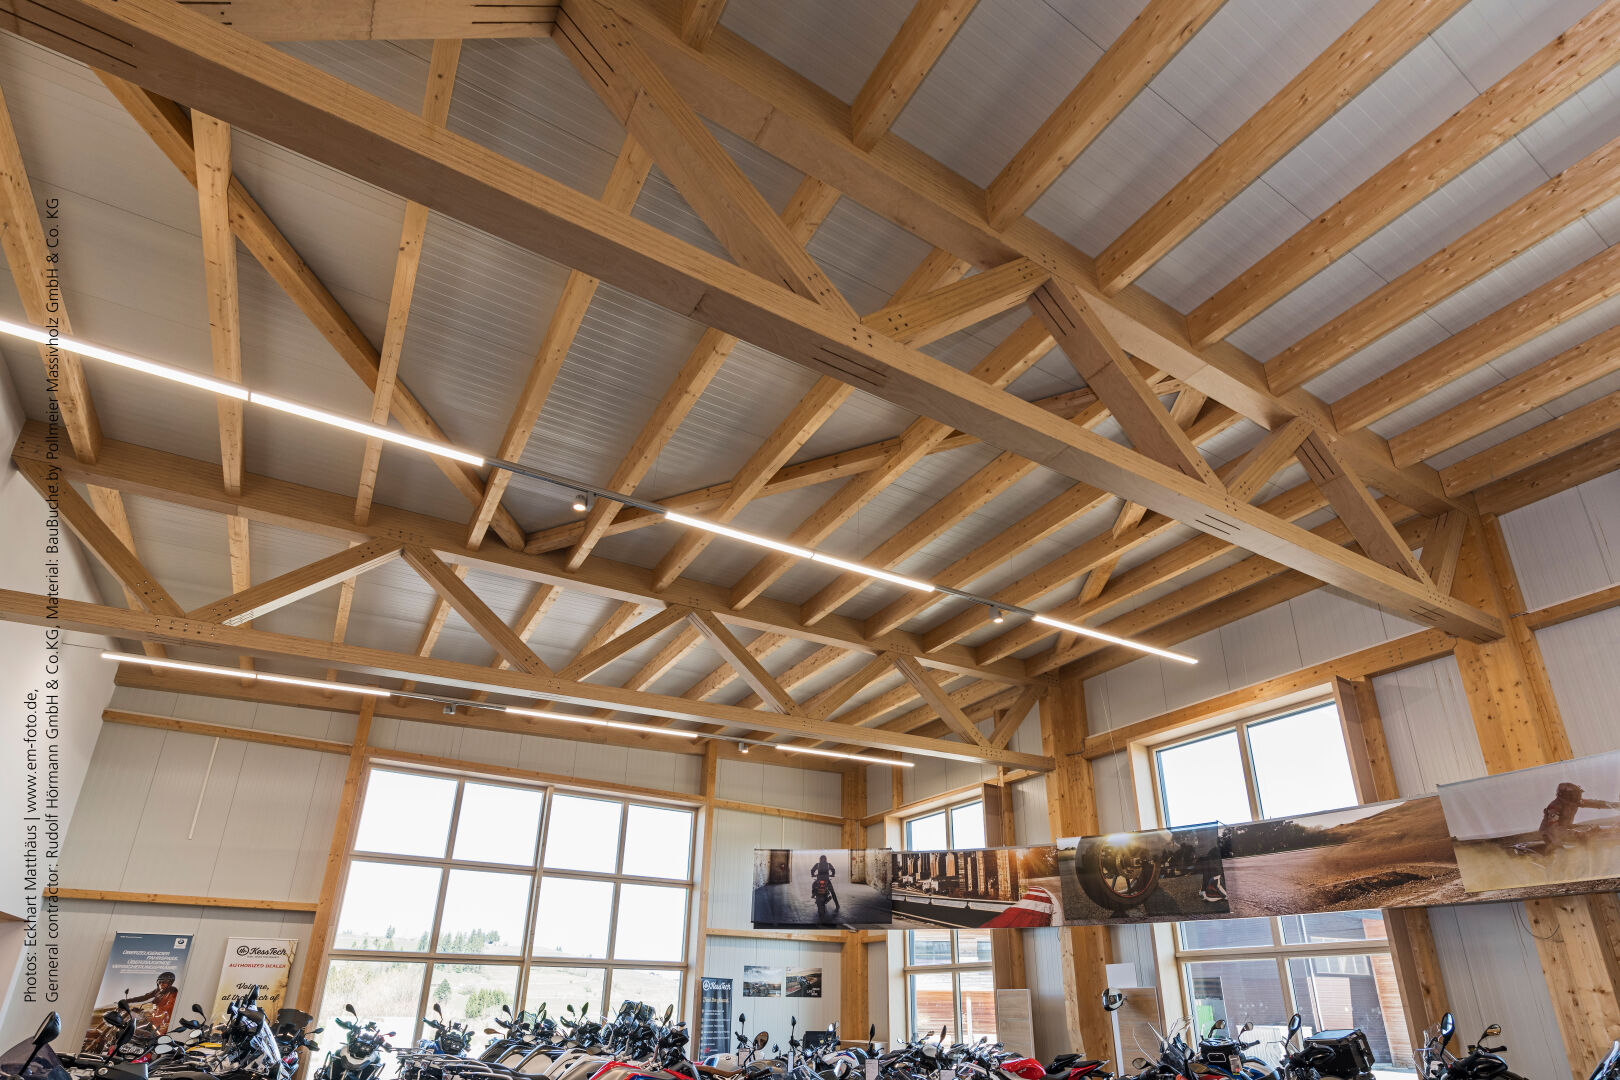 The new sales and showroom building for a motorbike dealership in Oy-Mittelberg